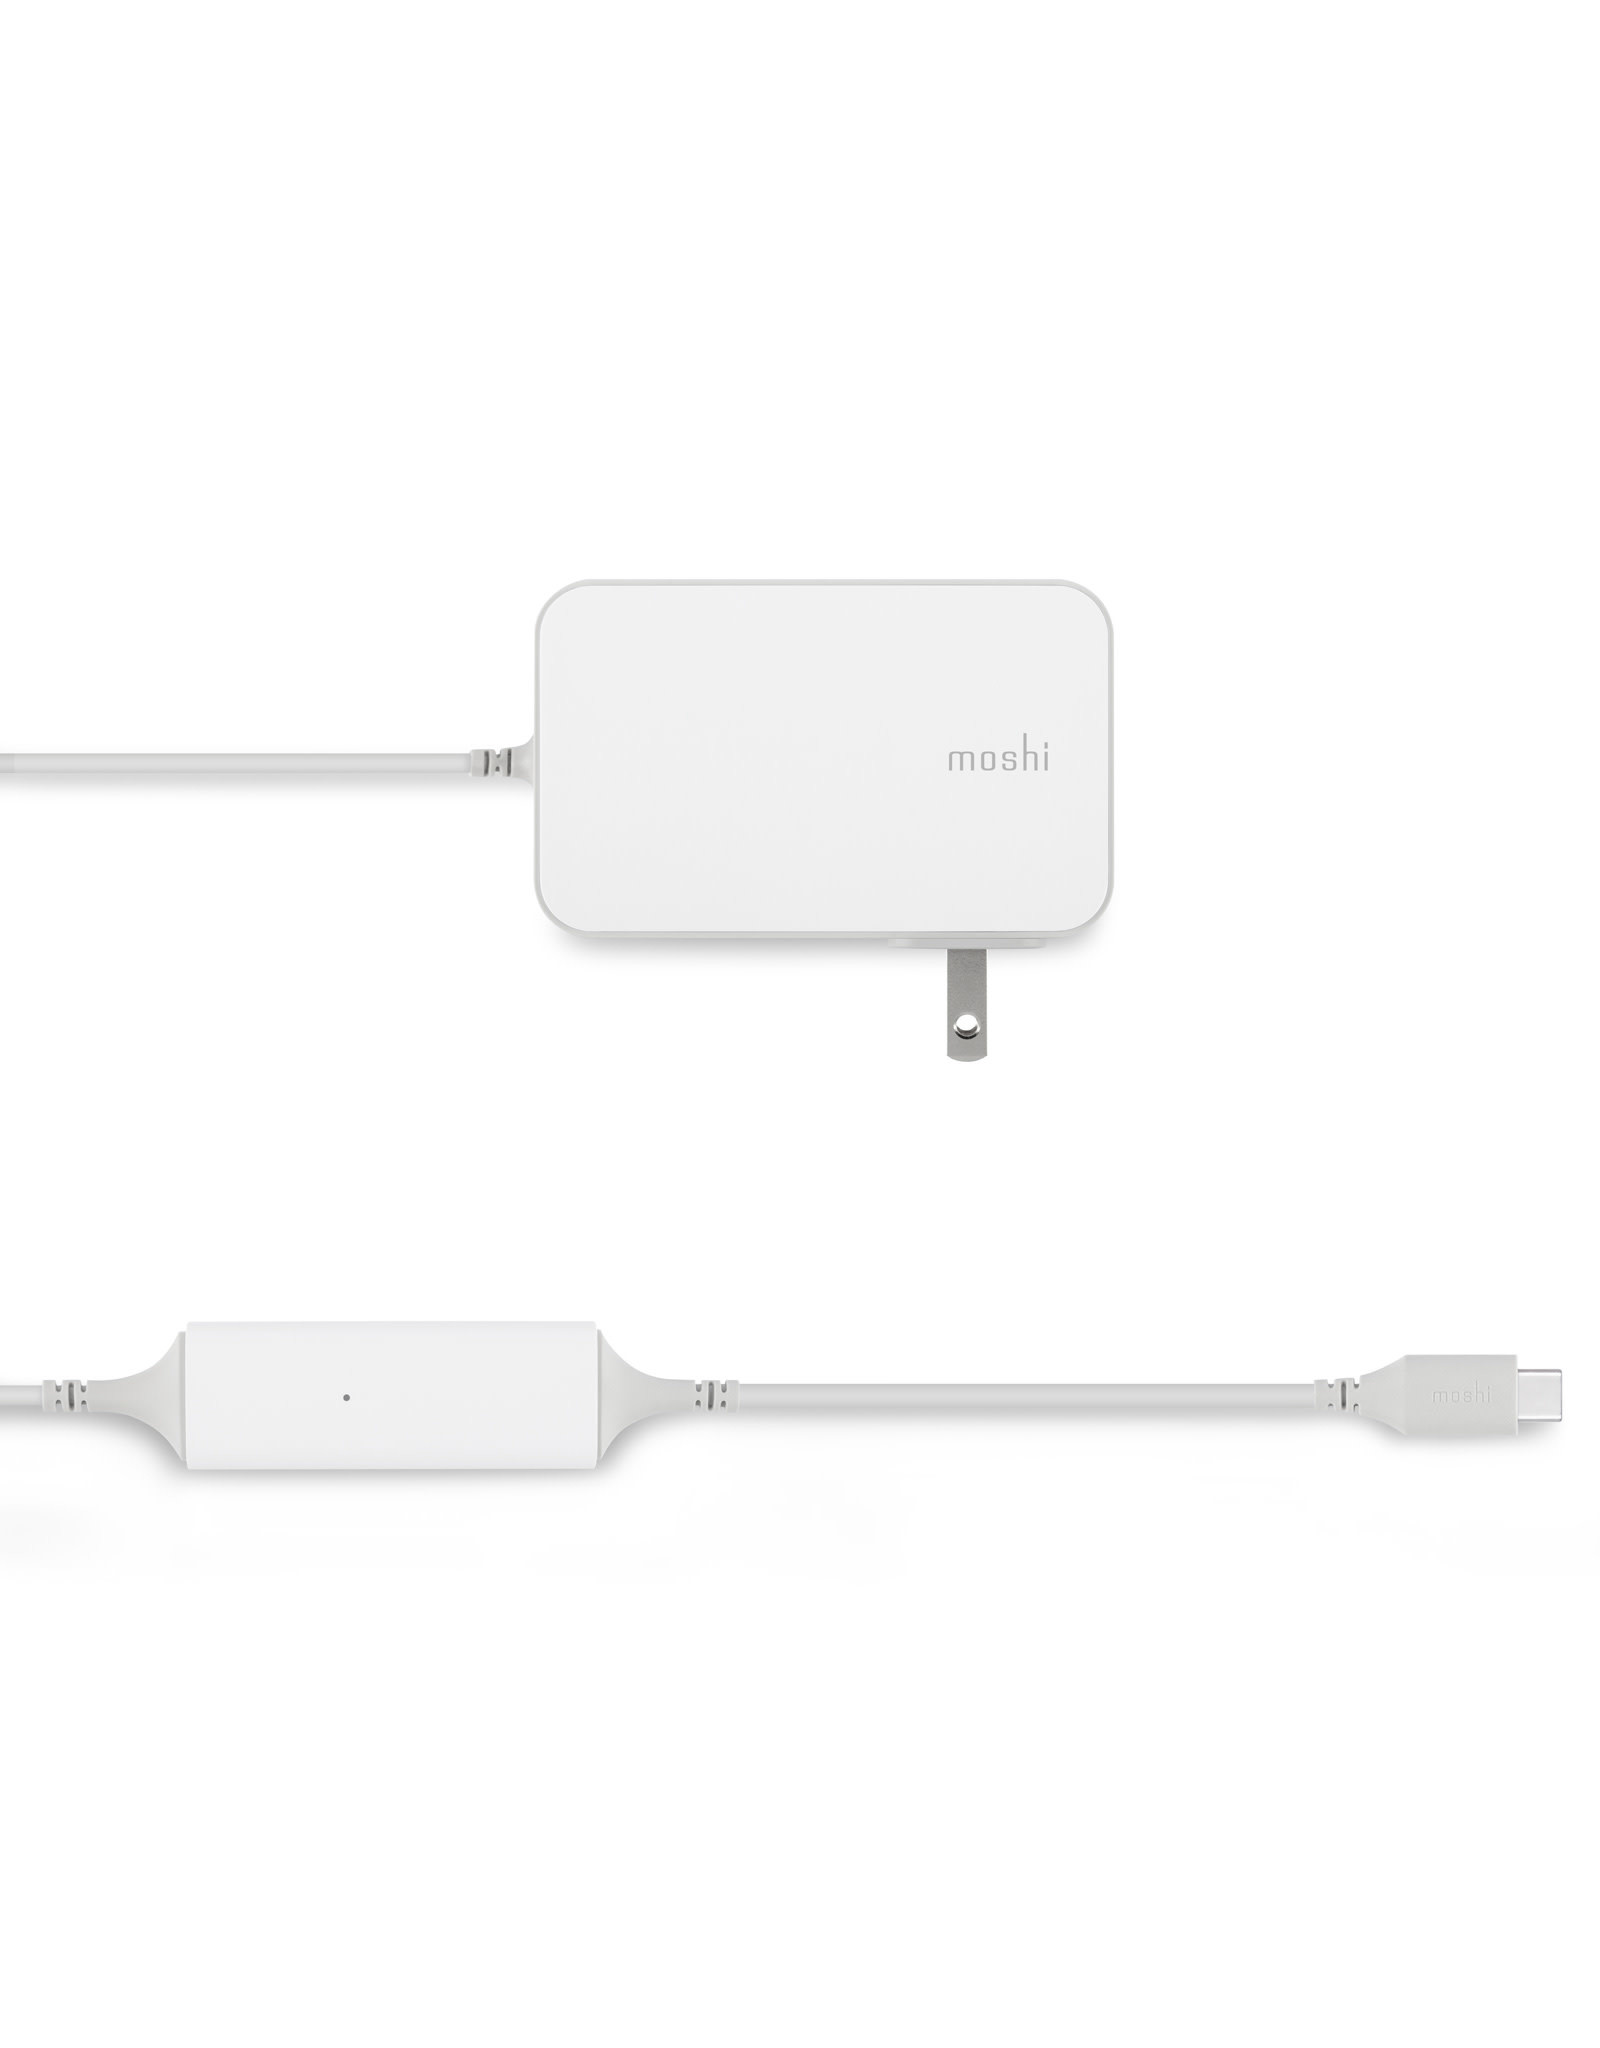 Moshi ProGeo USB-C Laptop Charger (65 W) US